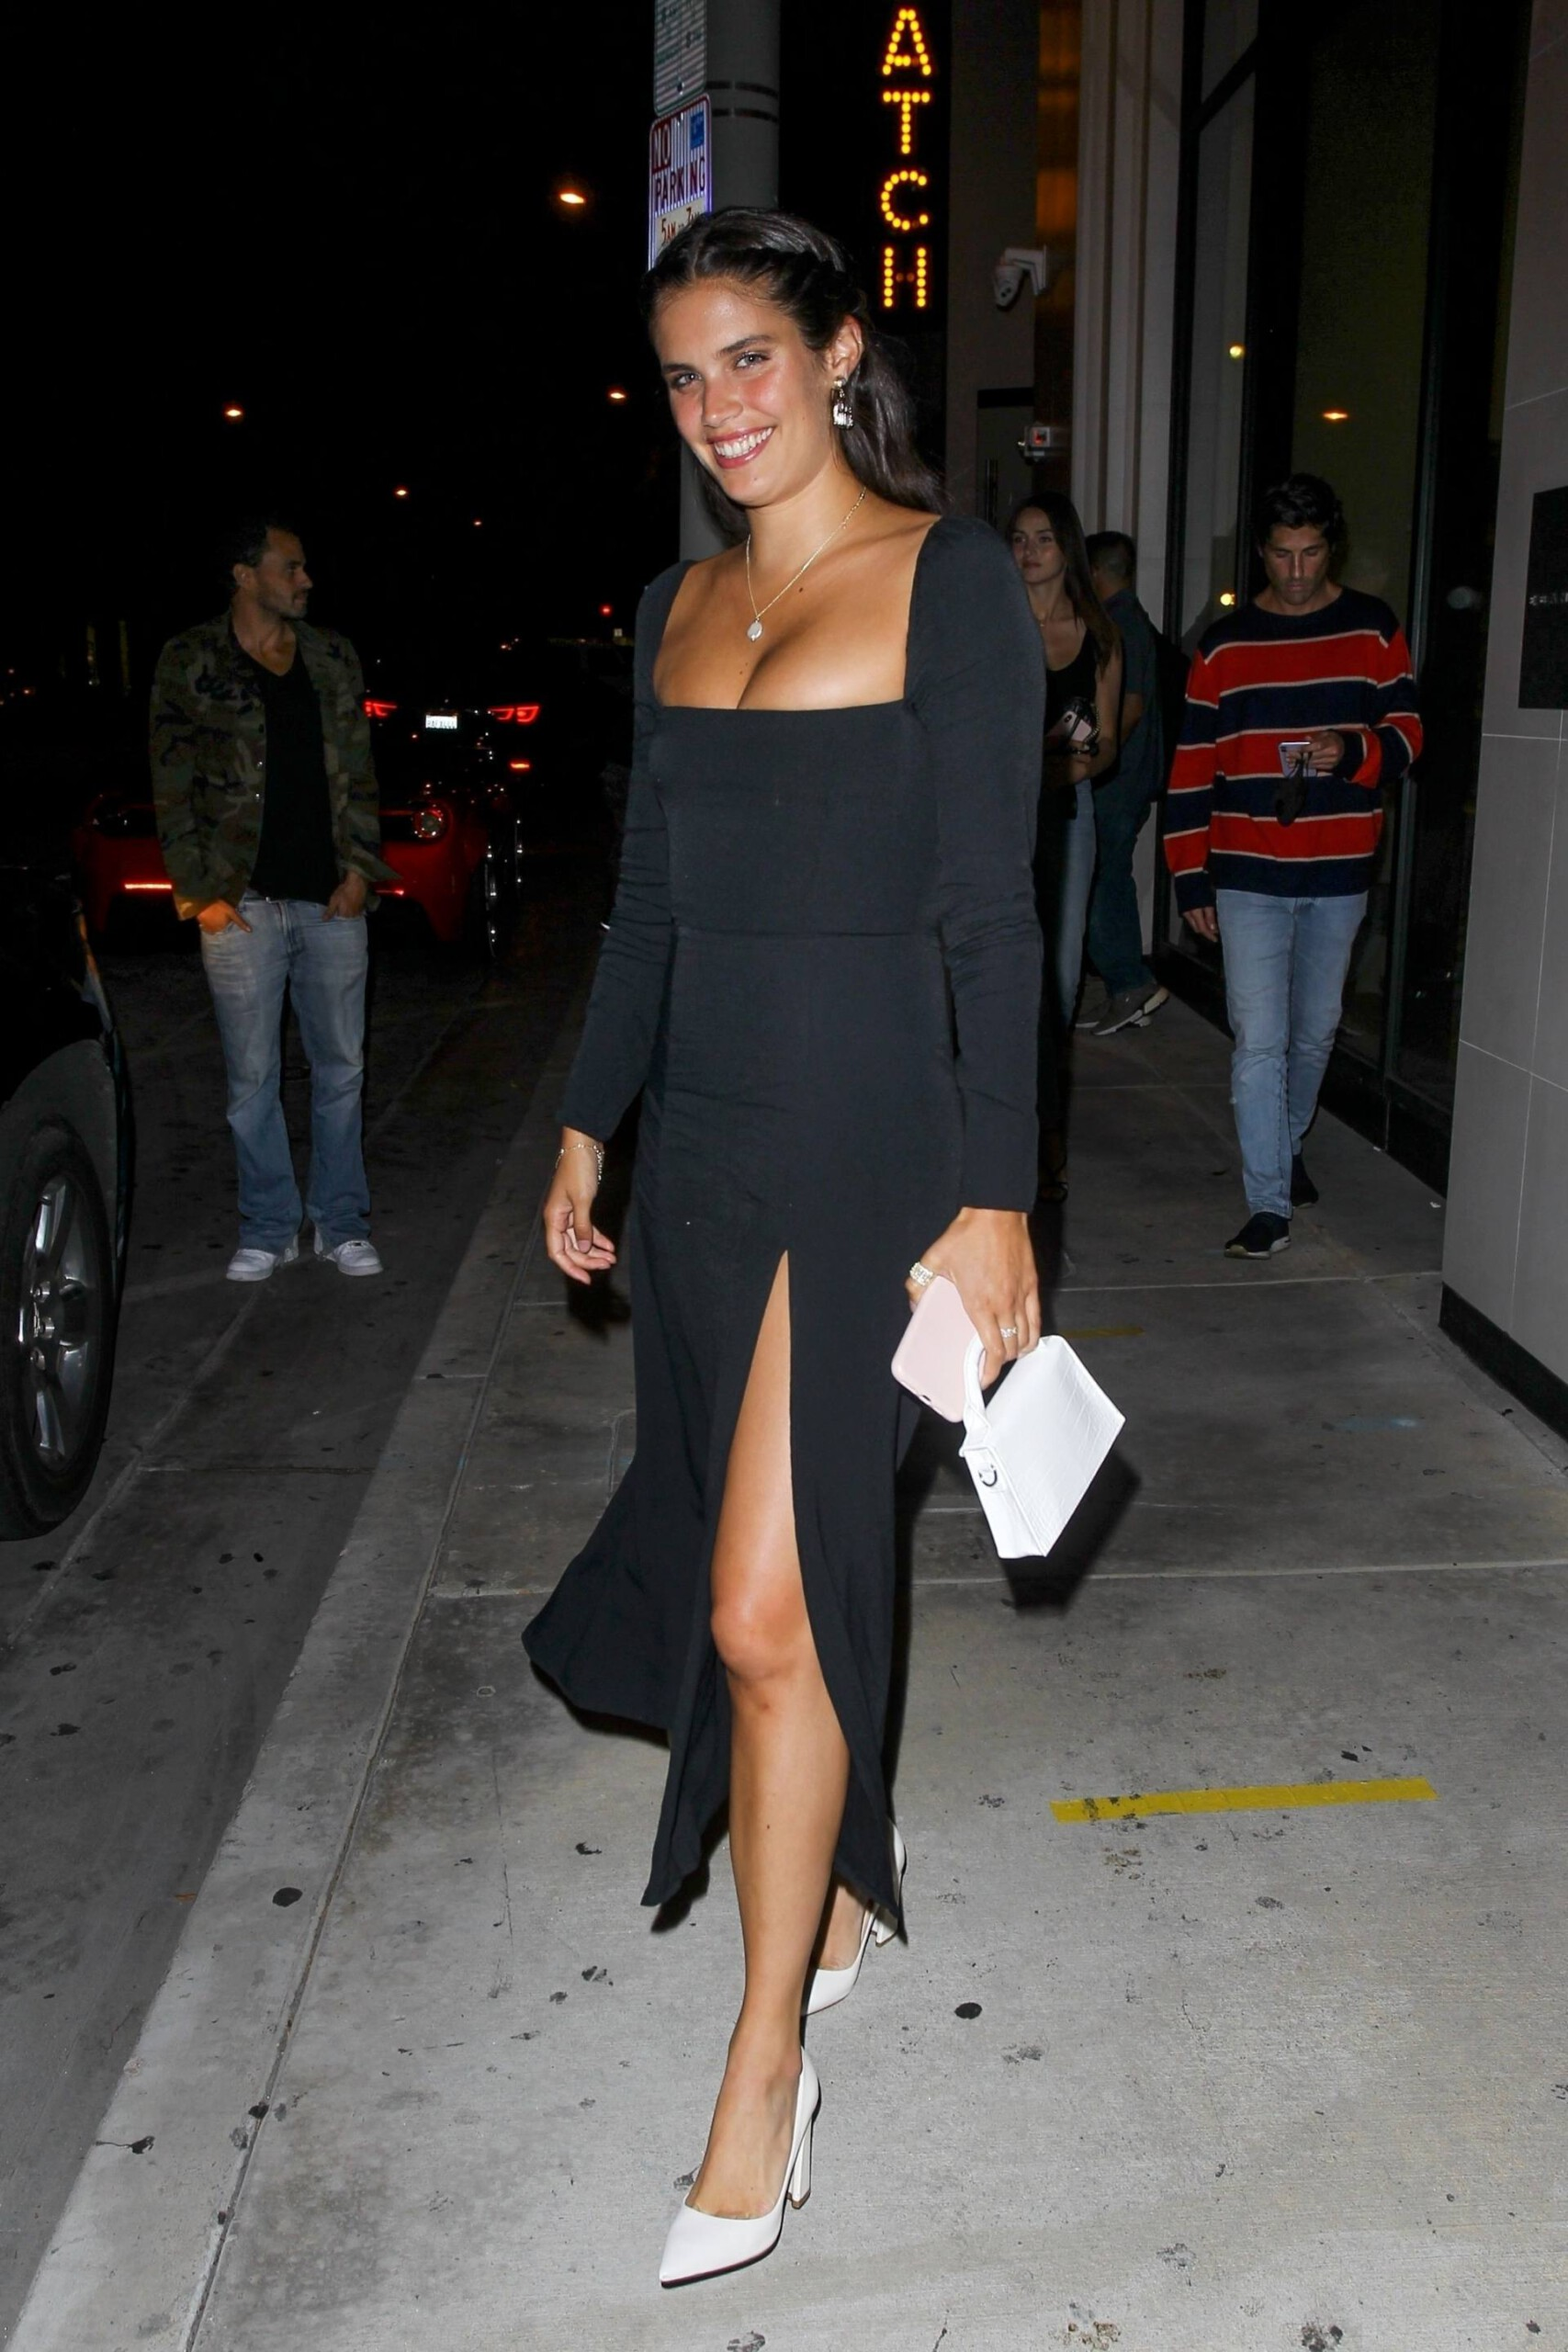 Sara Sampaio – Beautiful In Sexy Black Dress At Catch Restaurant In West Hollywood 0015